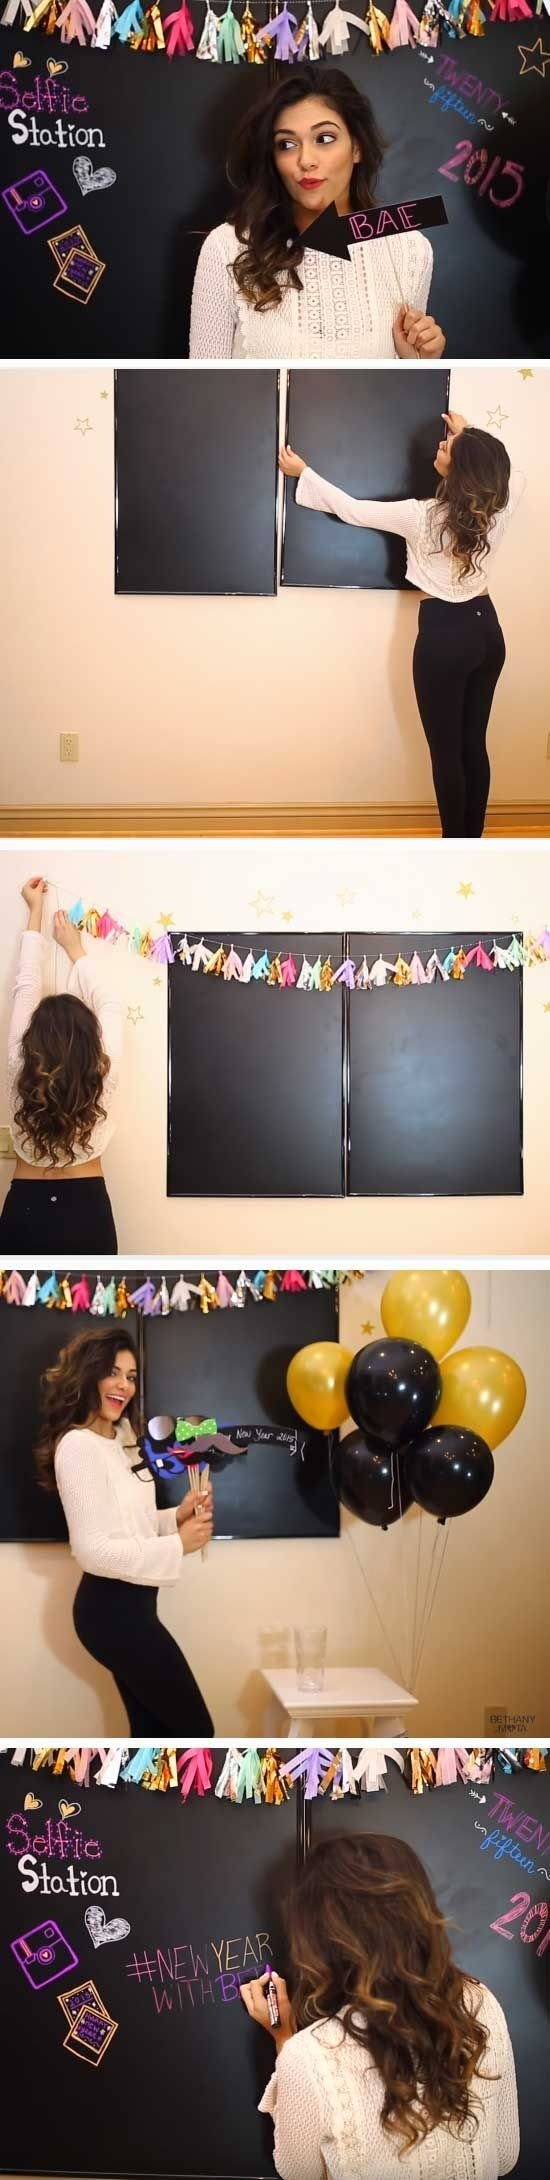 10 Lovable Last Minute New Years Eve Ideas 99 best birthday images on pinterest birthdays party ideas and 2020